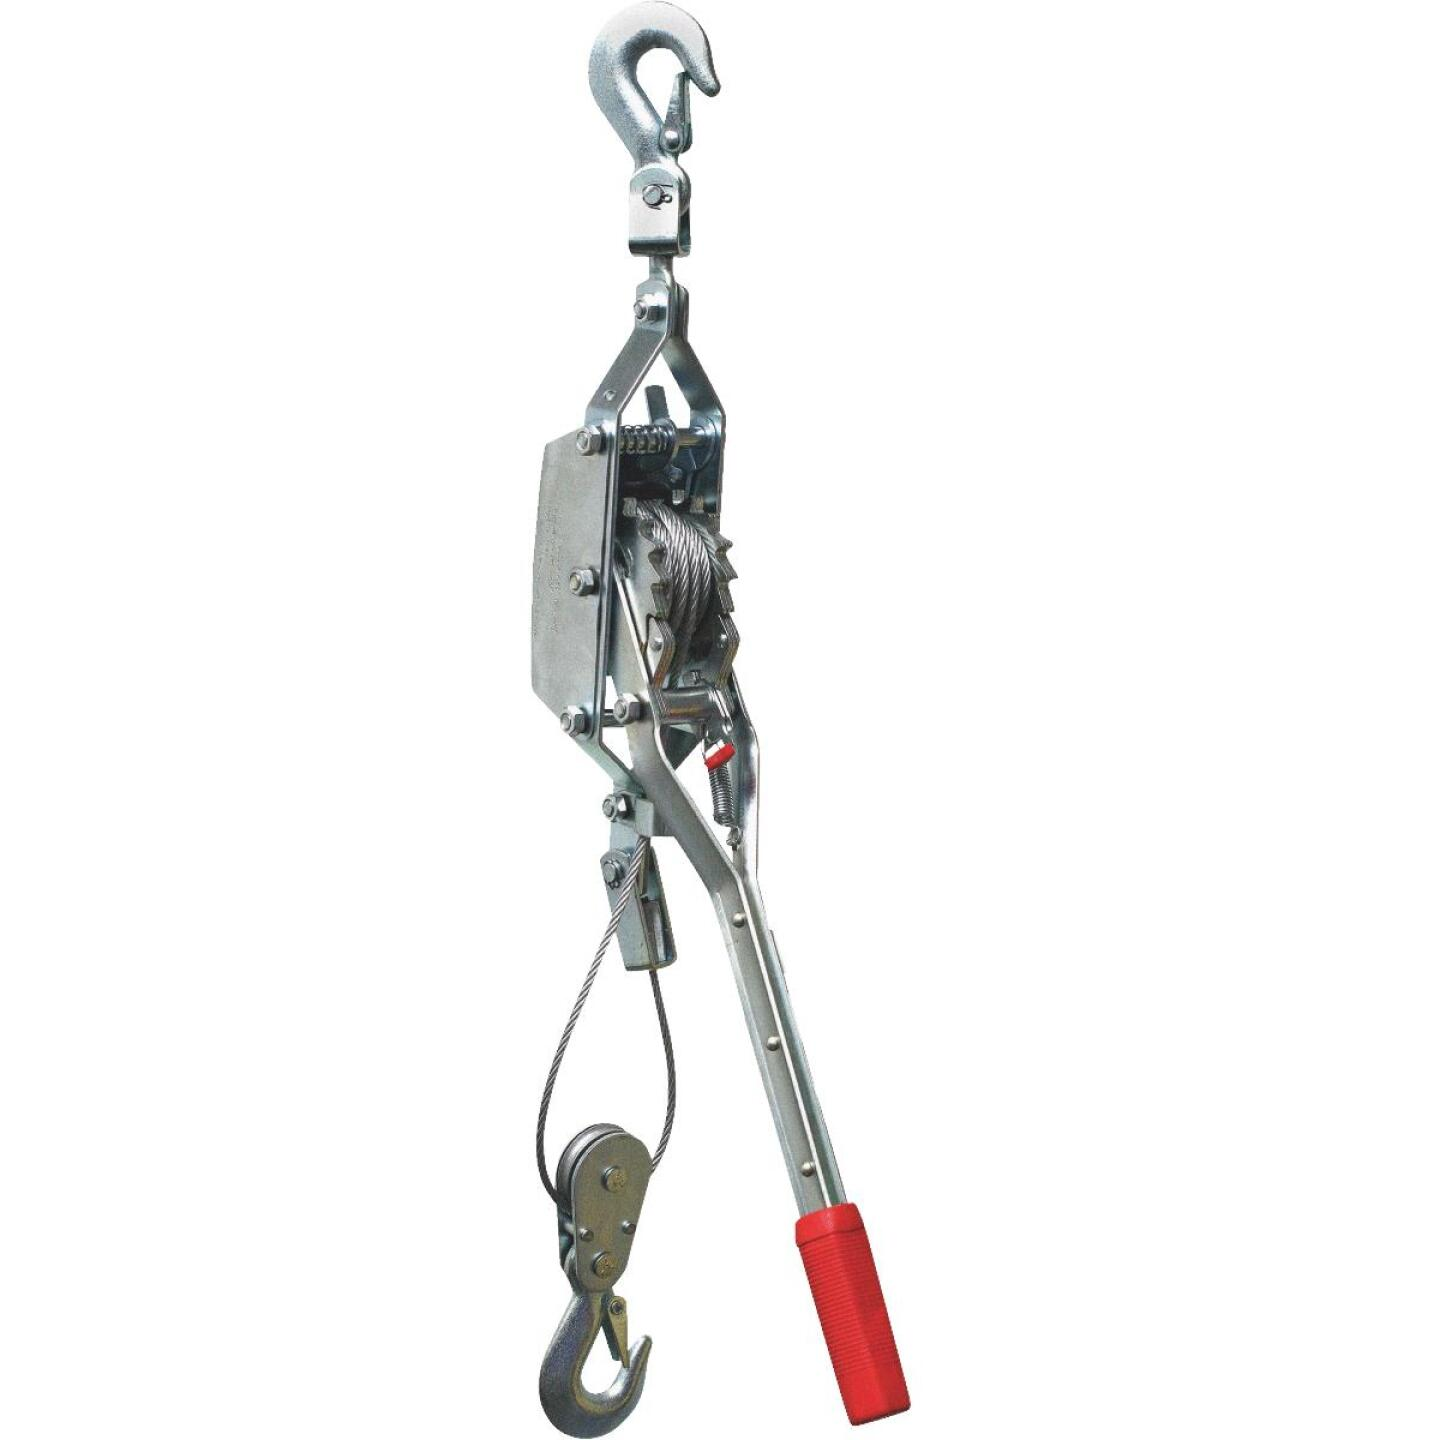 American Power Pull 2-Ton 6 Ft. Cable Puller Image 1